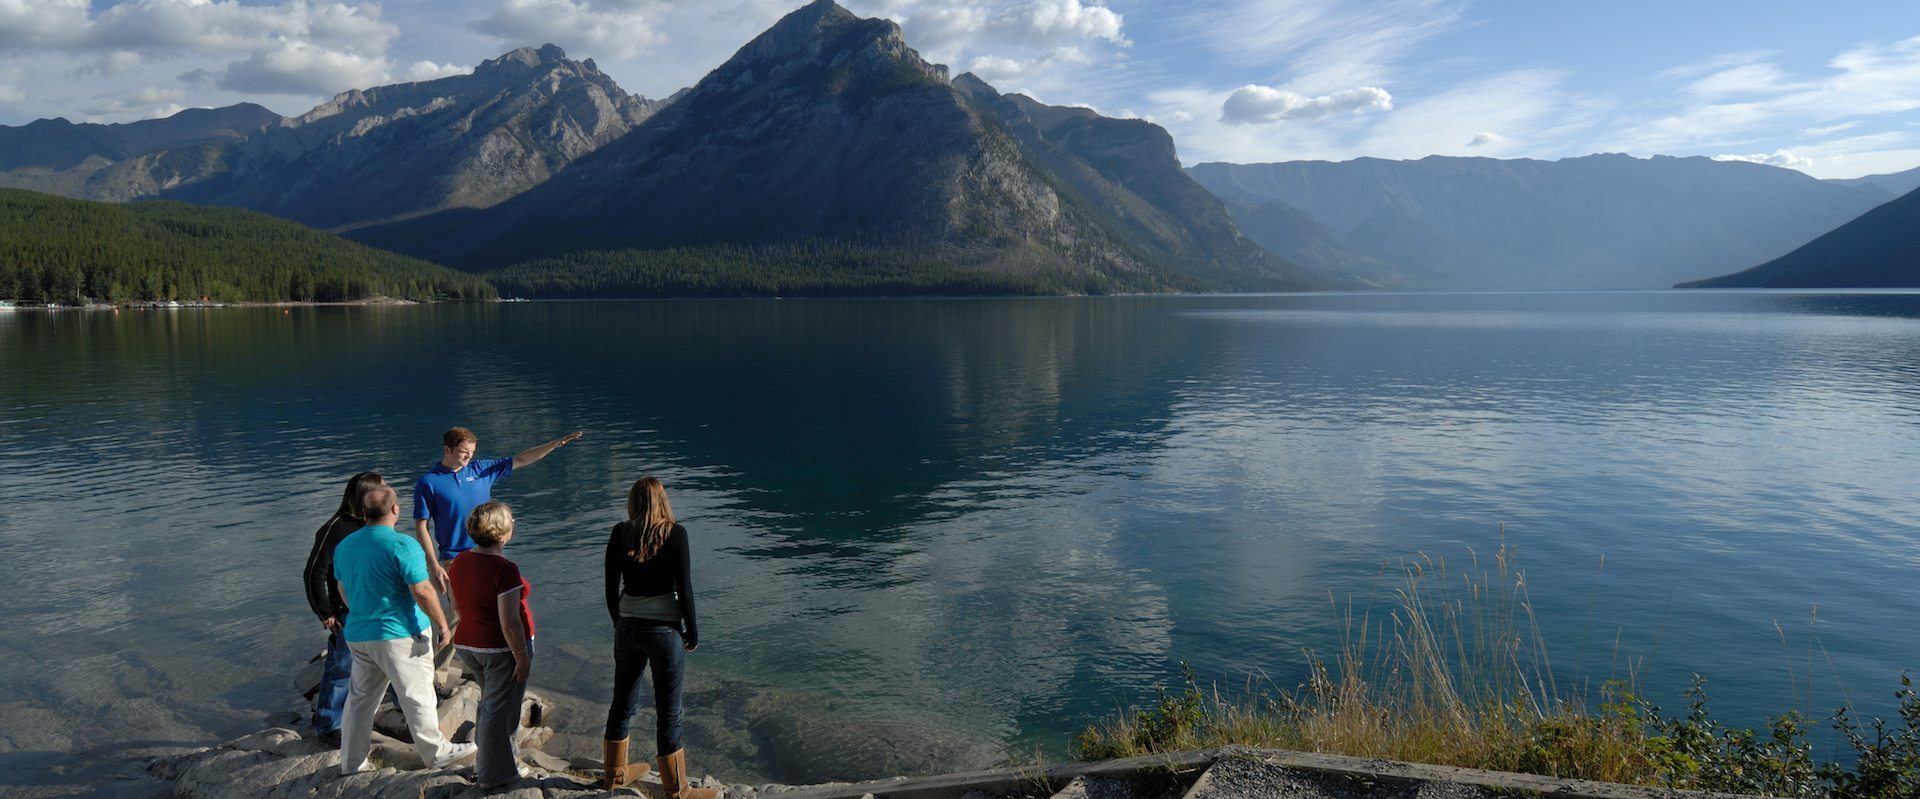 Discover Banff and Its Wildlife Lake Minnewanka